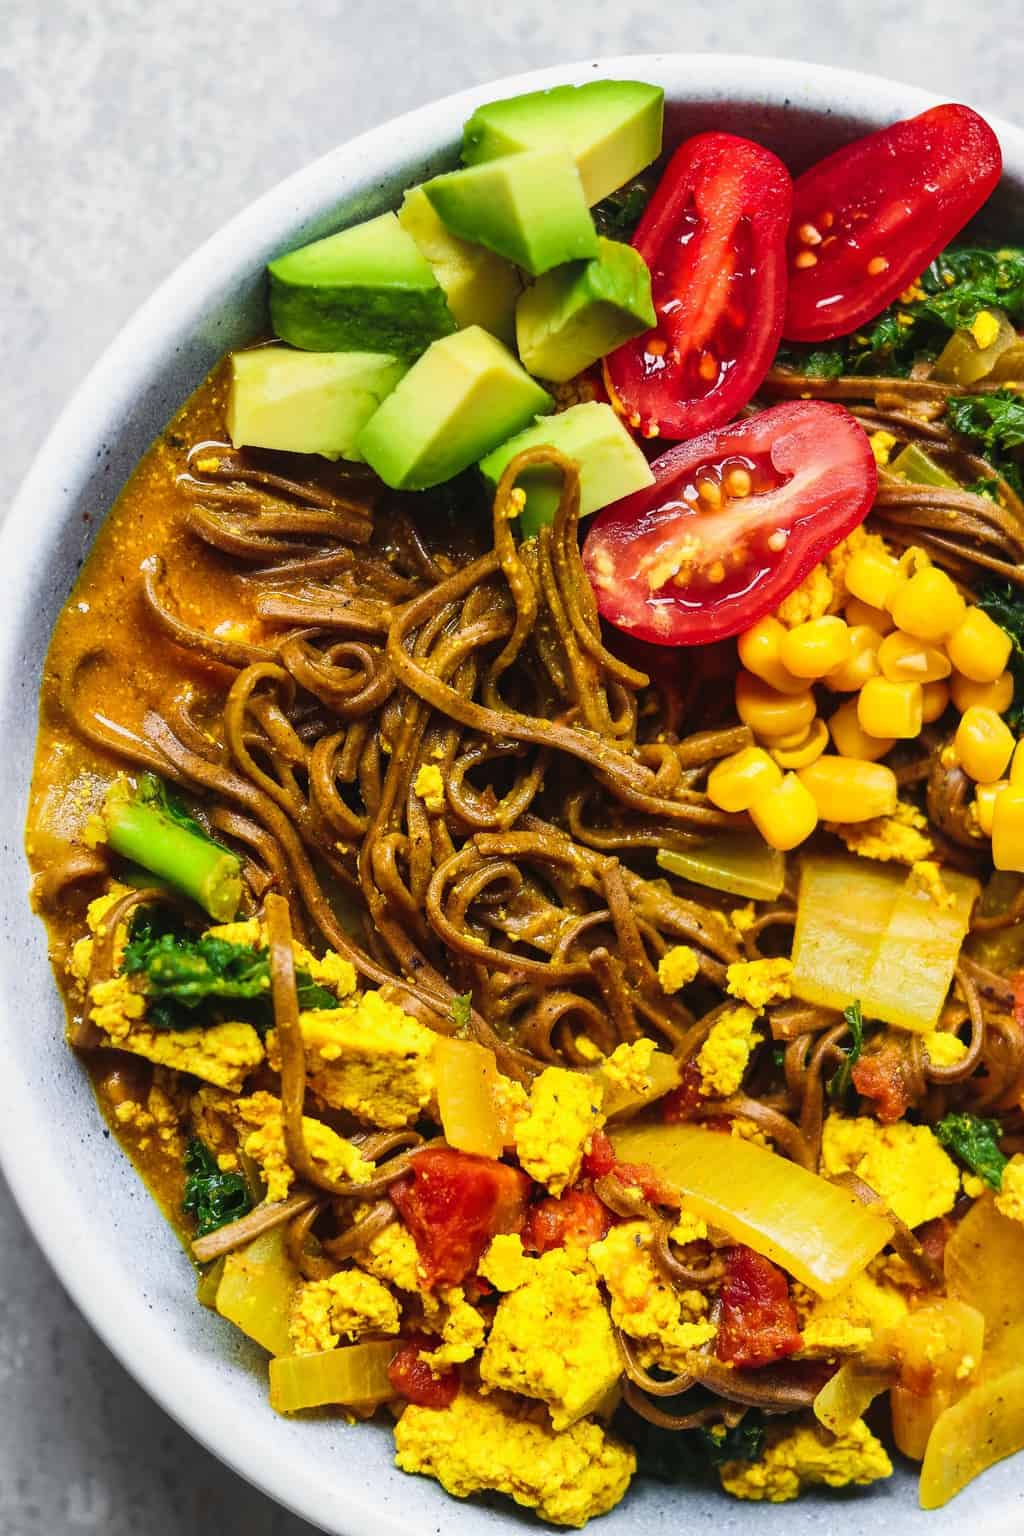 Bowl with vegan curried soup